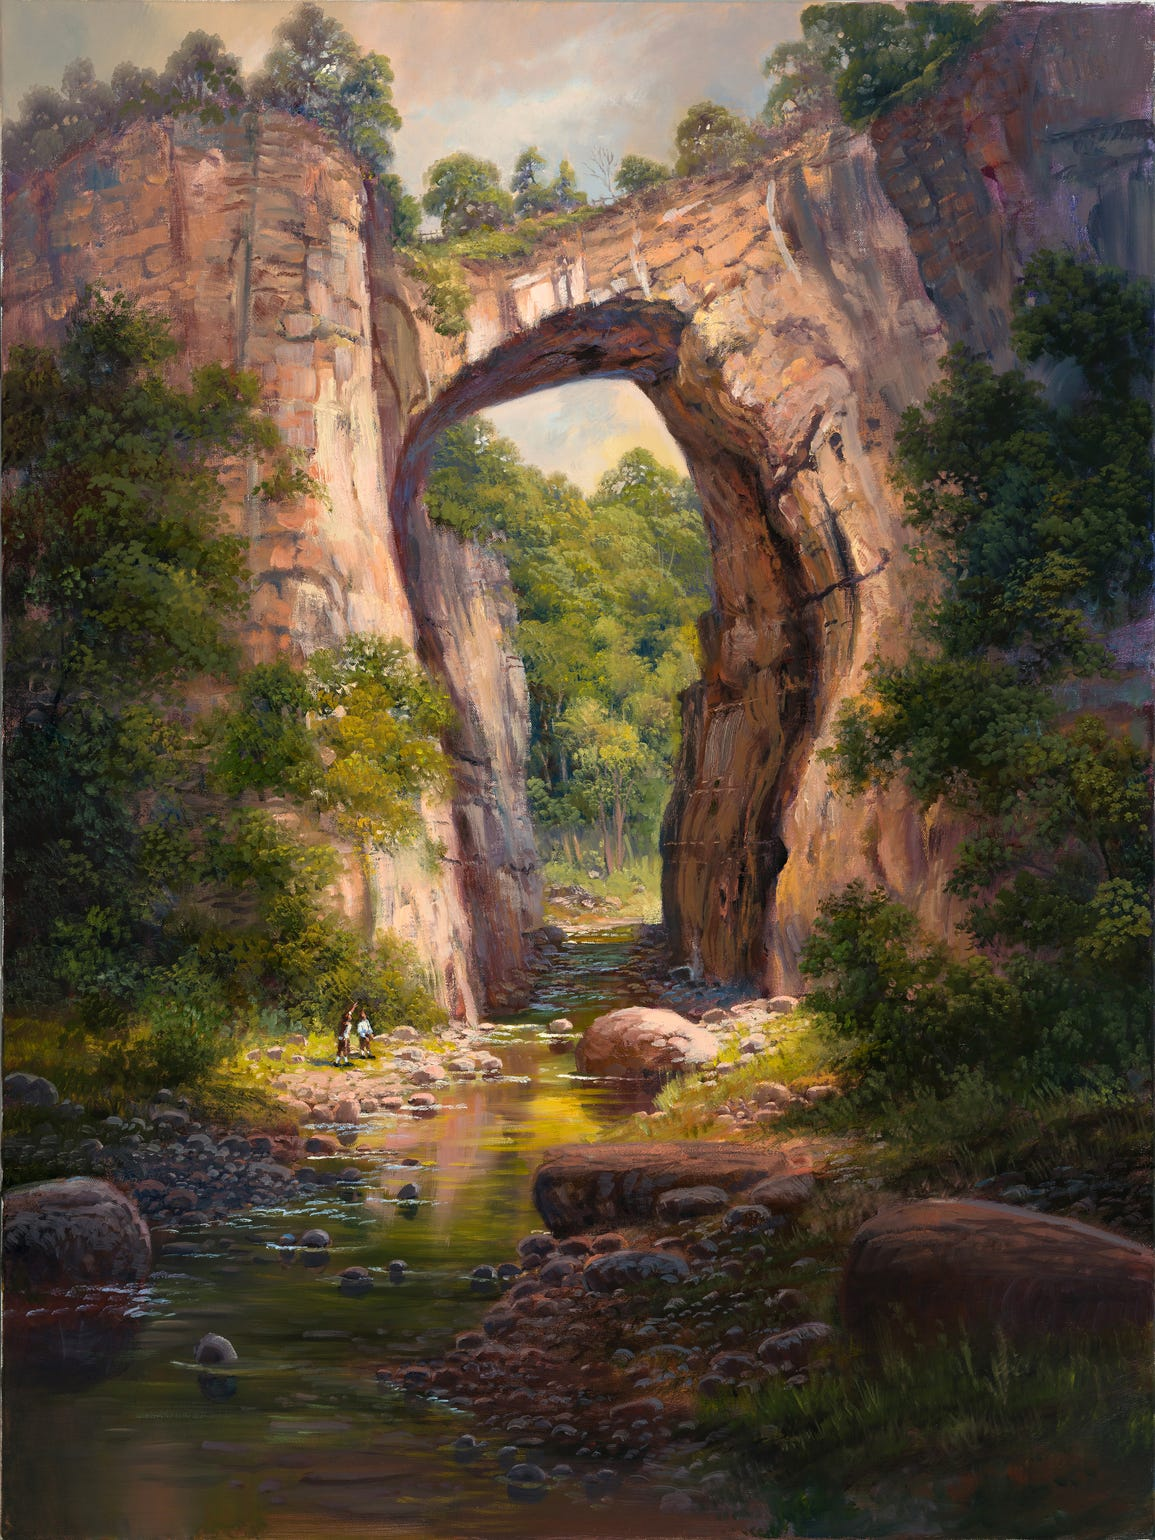 A natural bridge dwarfs George Washington, who, it